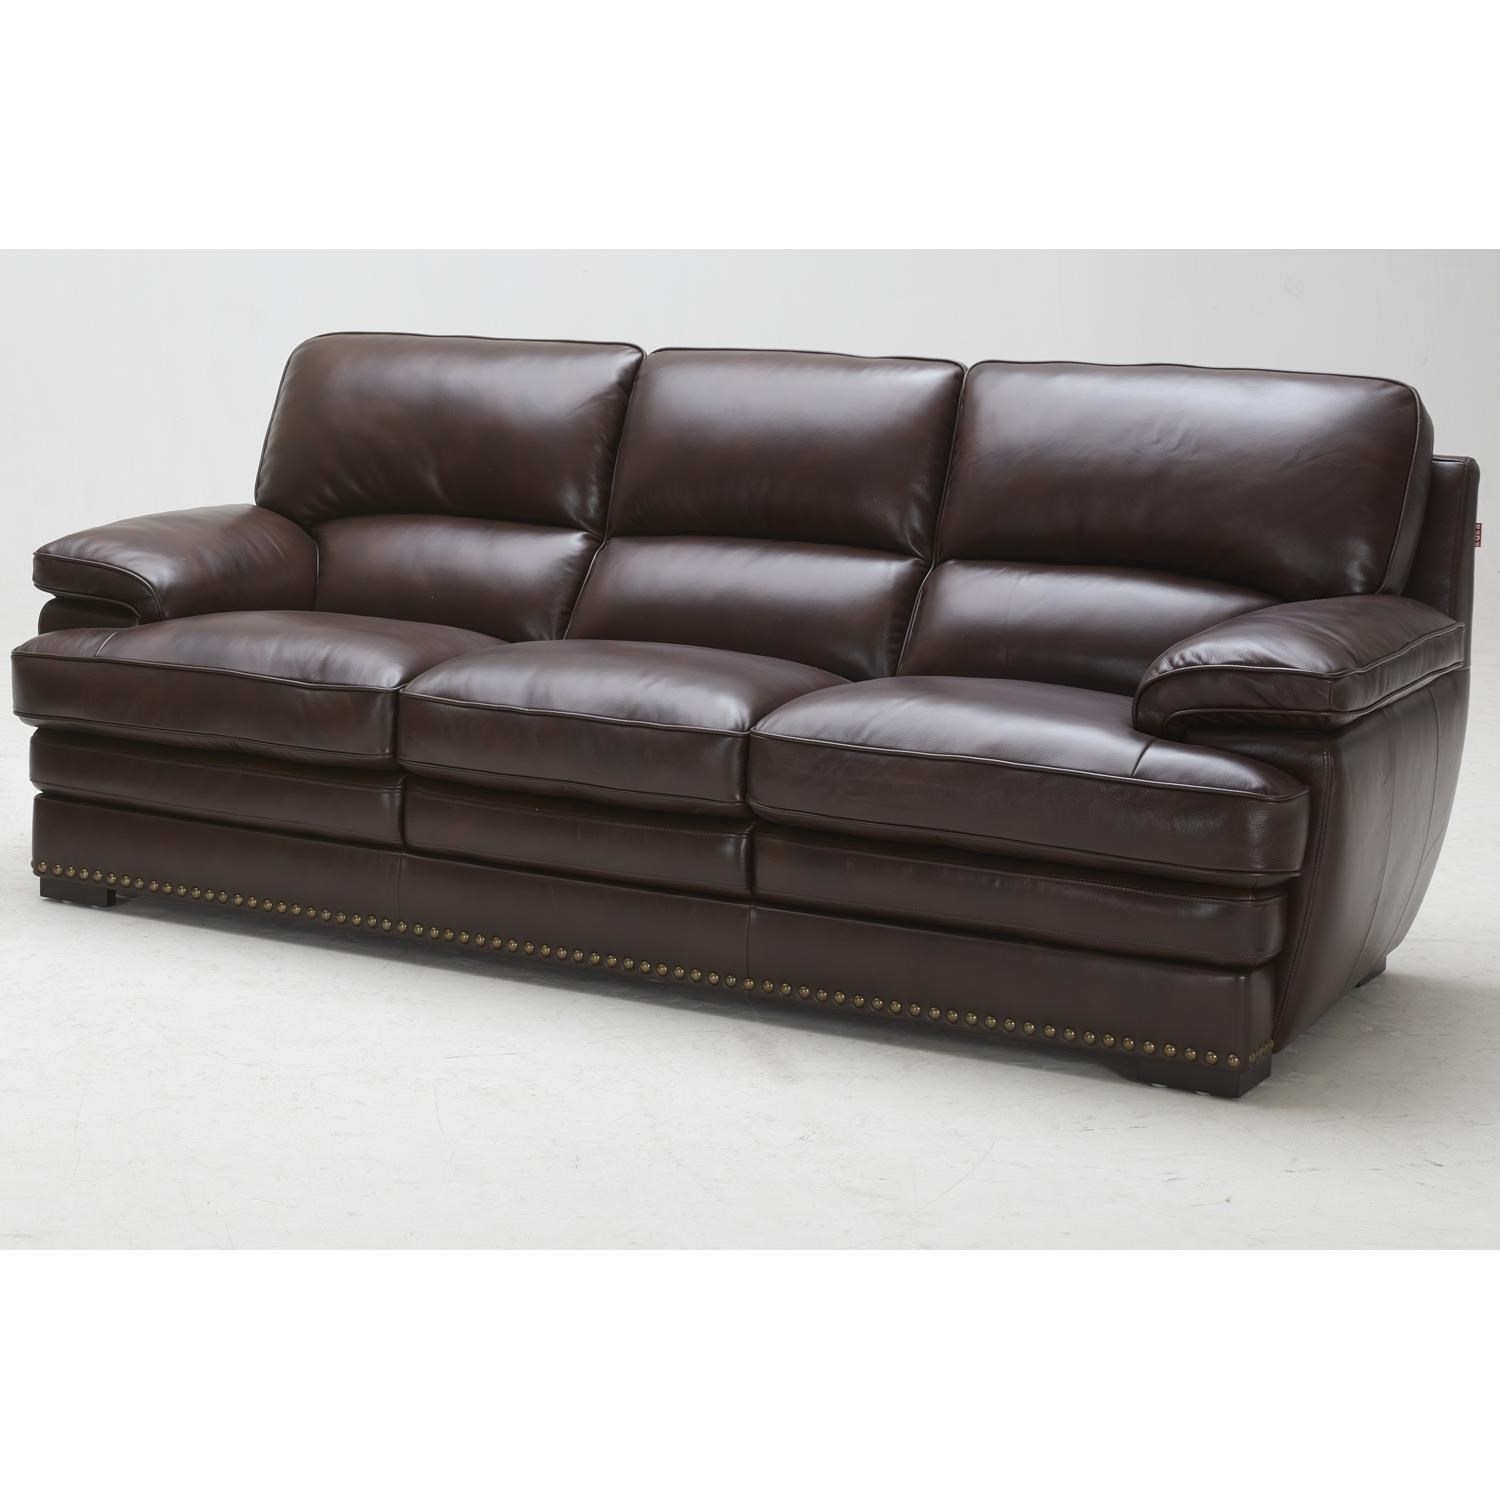 Urban Evolution Duncan Leather Sofa - Item Number: 3301-3